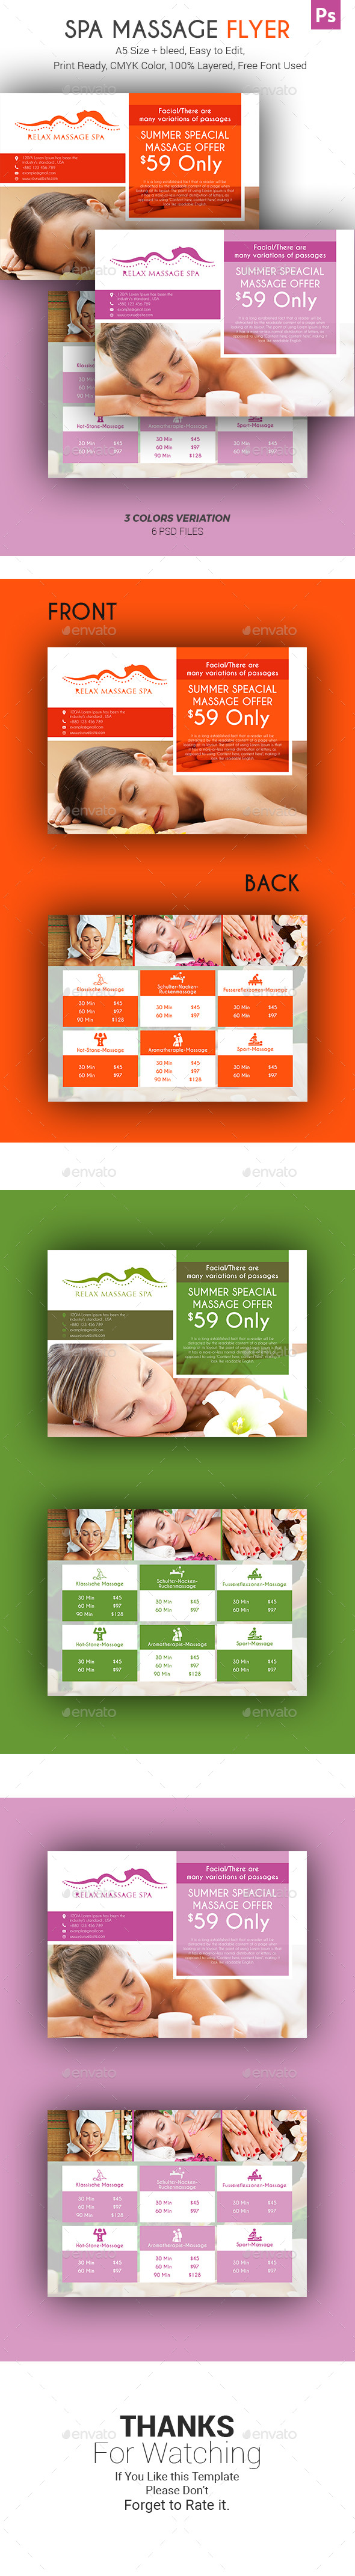 Spa Massage Flyer - Corporate Flyers